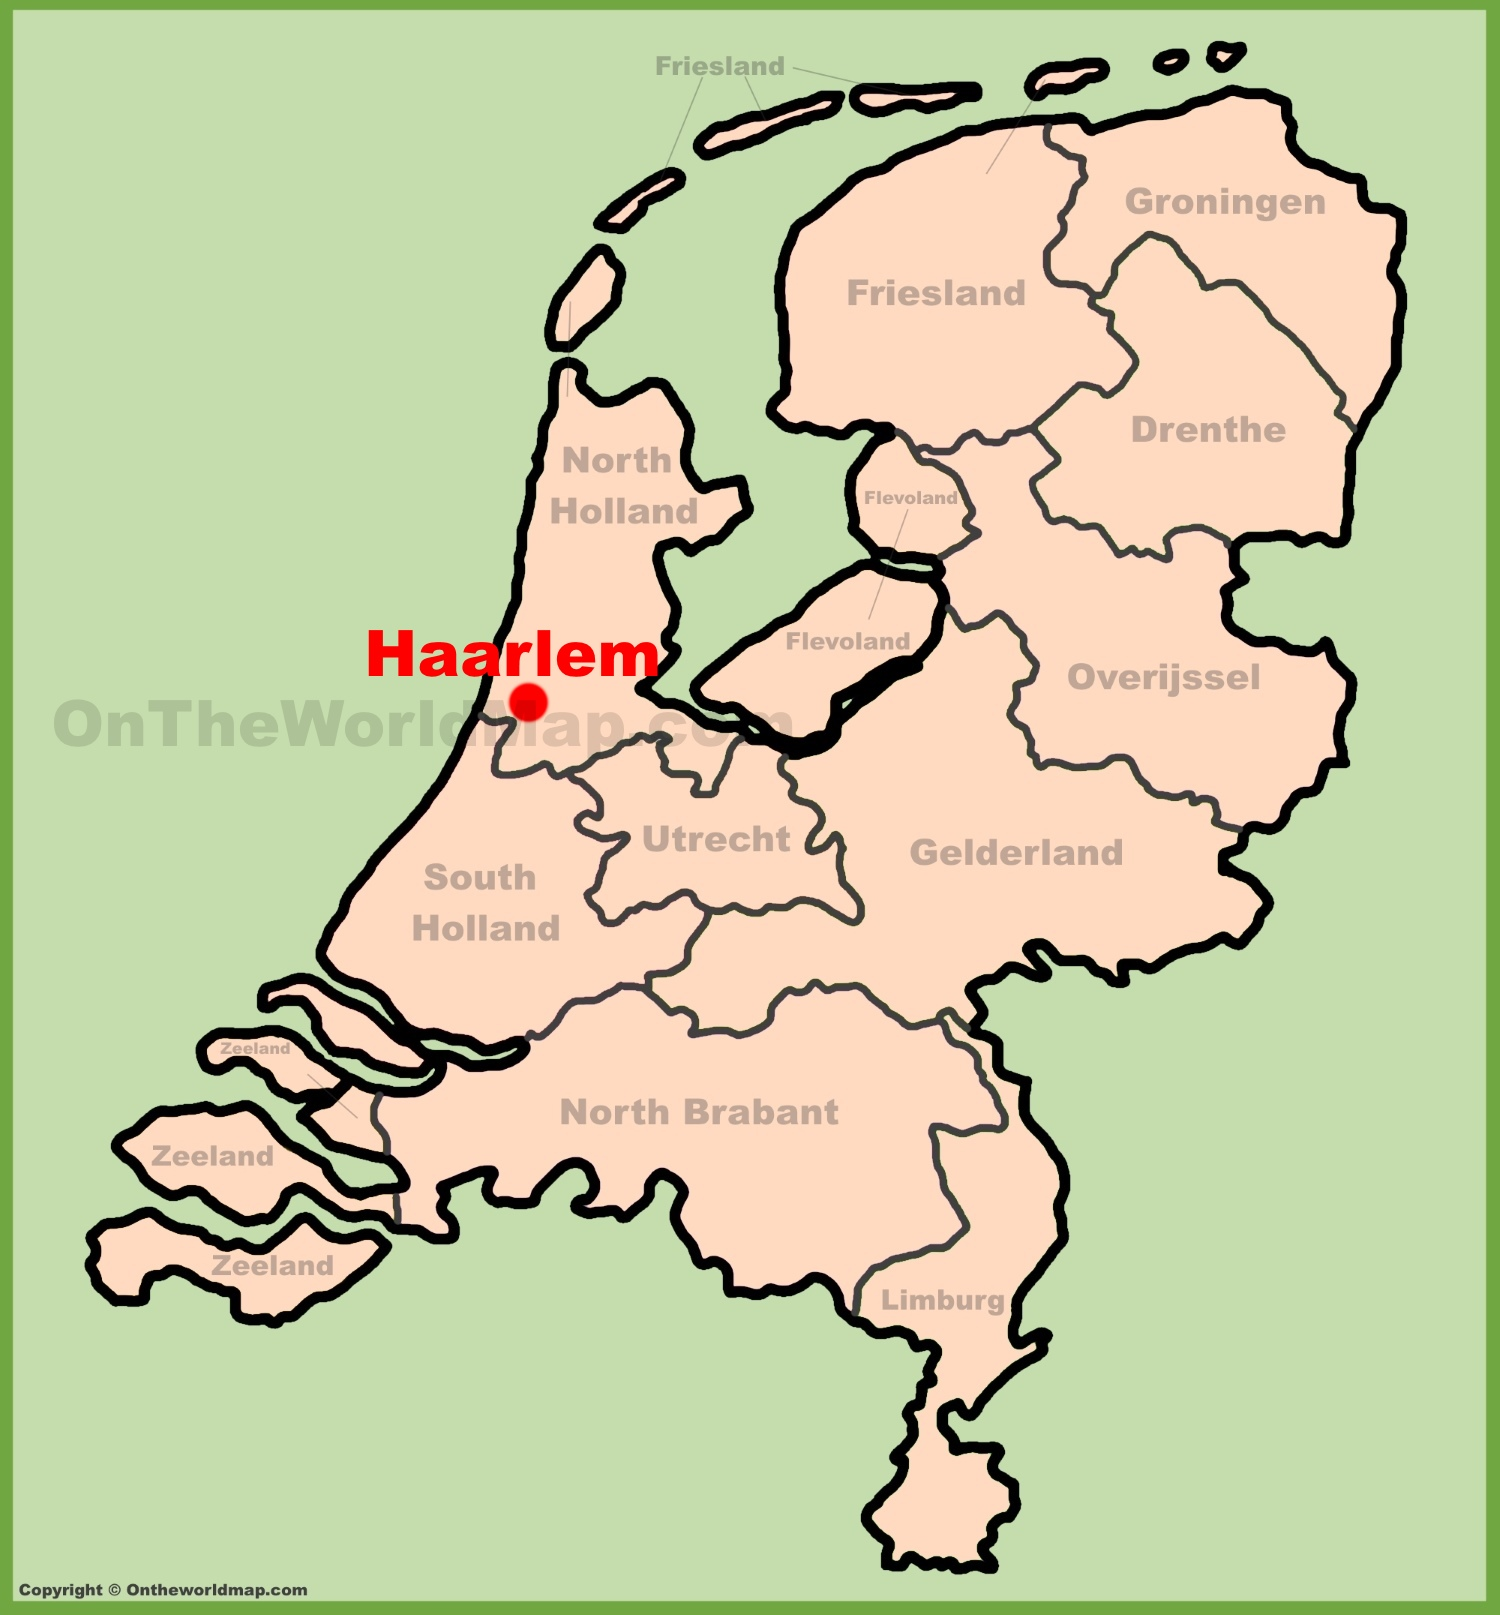 Haarlem location on the Netherlands map